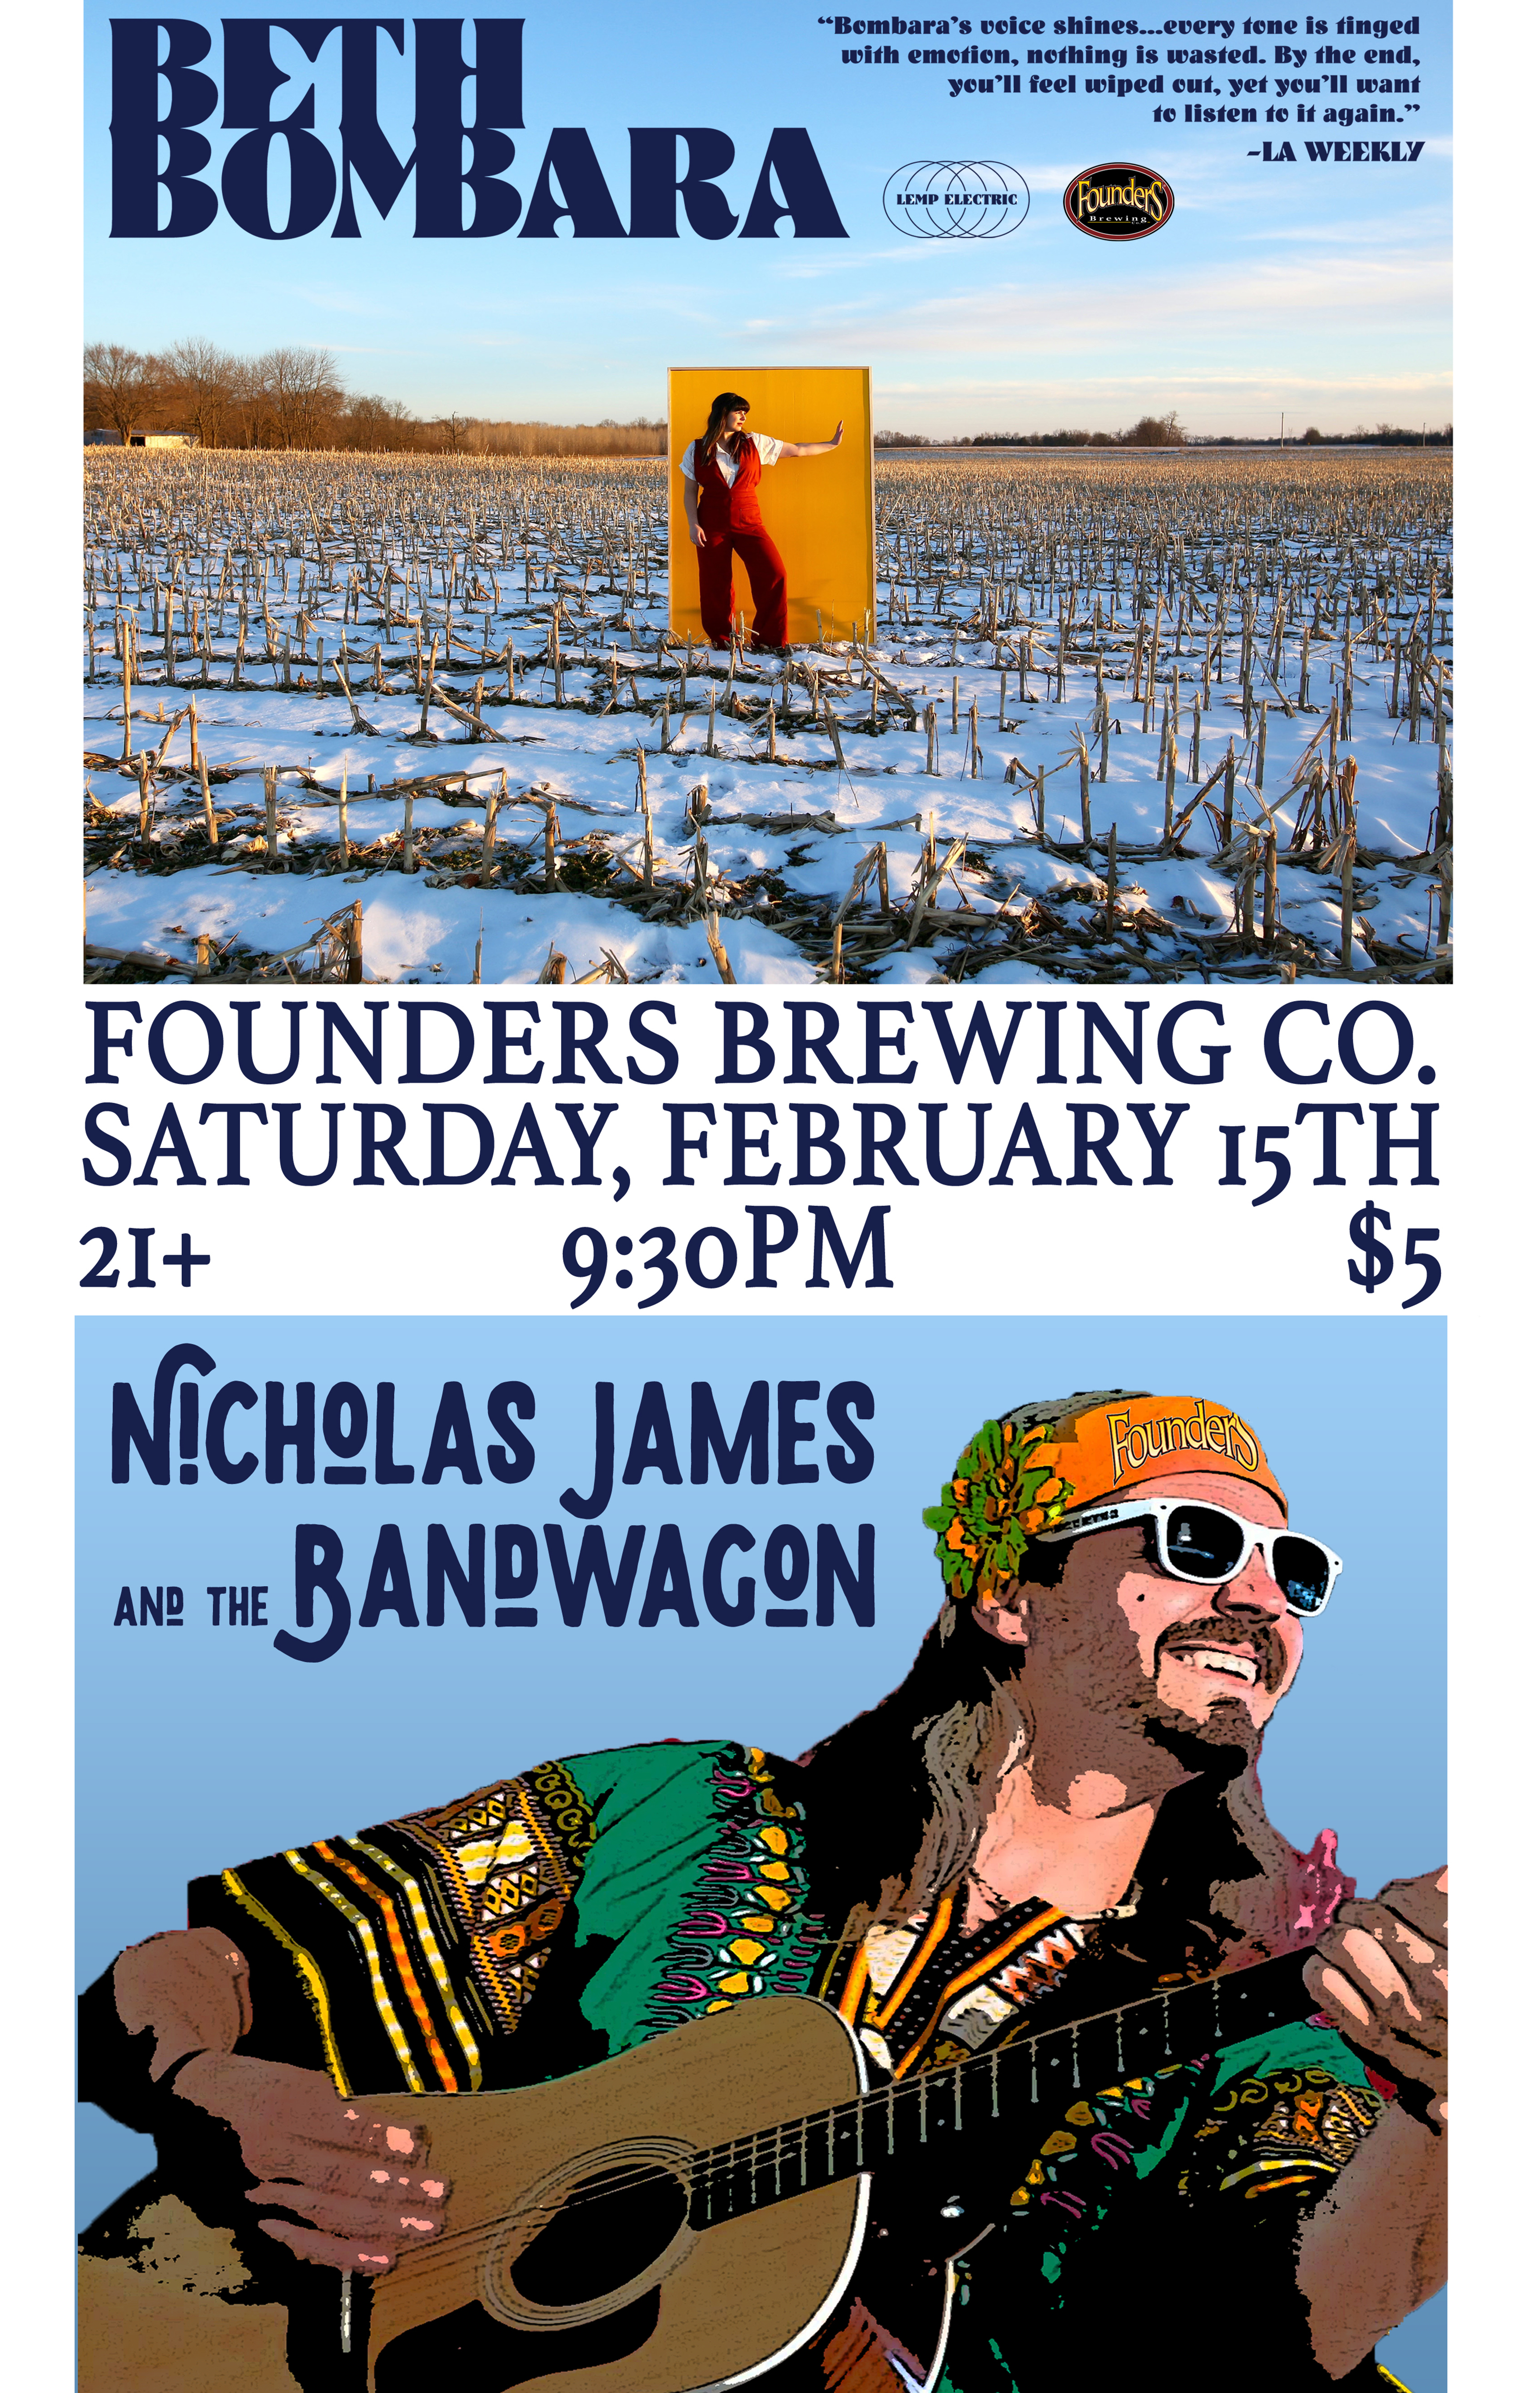 Beth Bombara and Nicholas James event poster hosted by Founders Brewing Co.